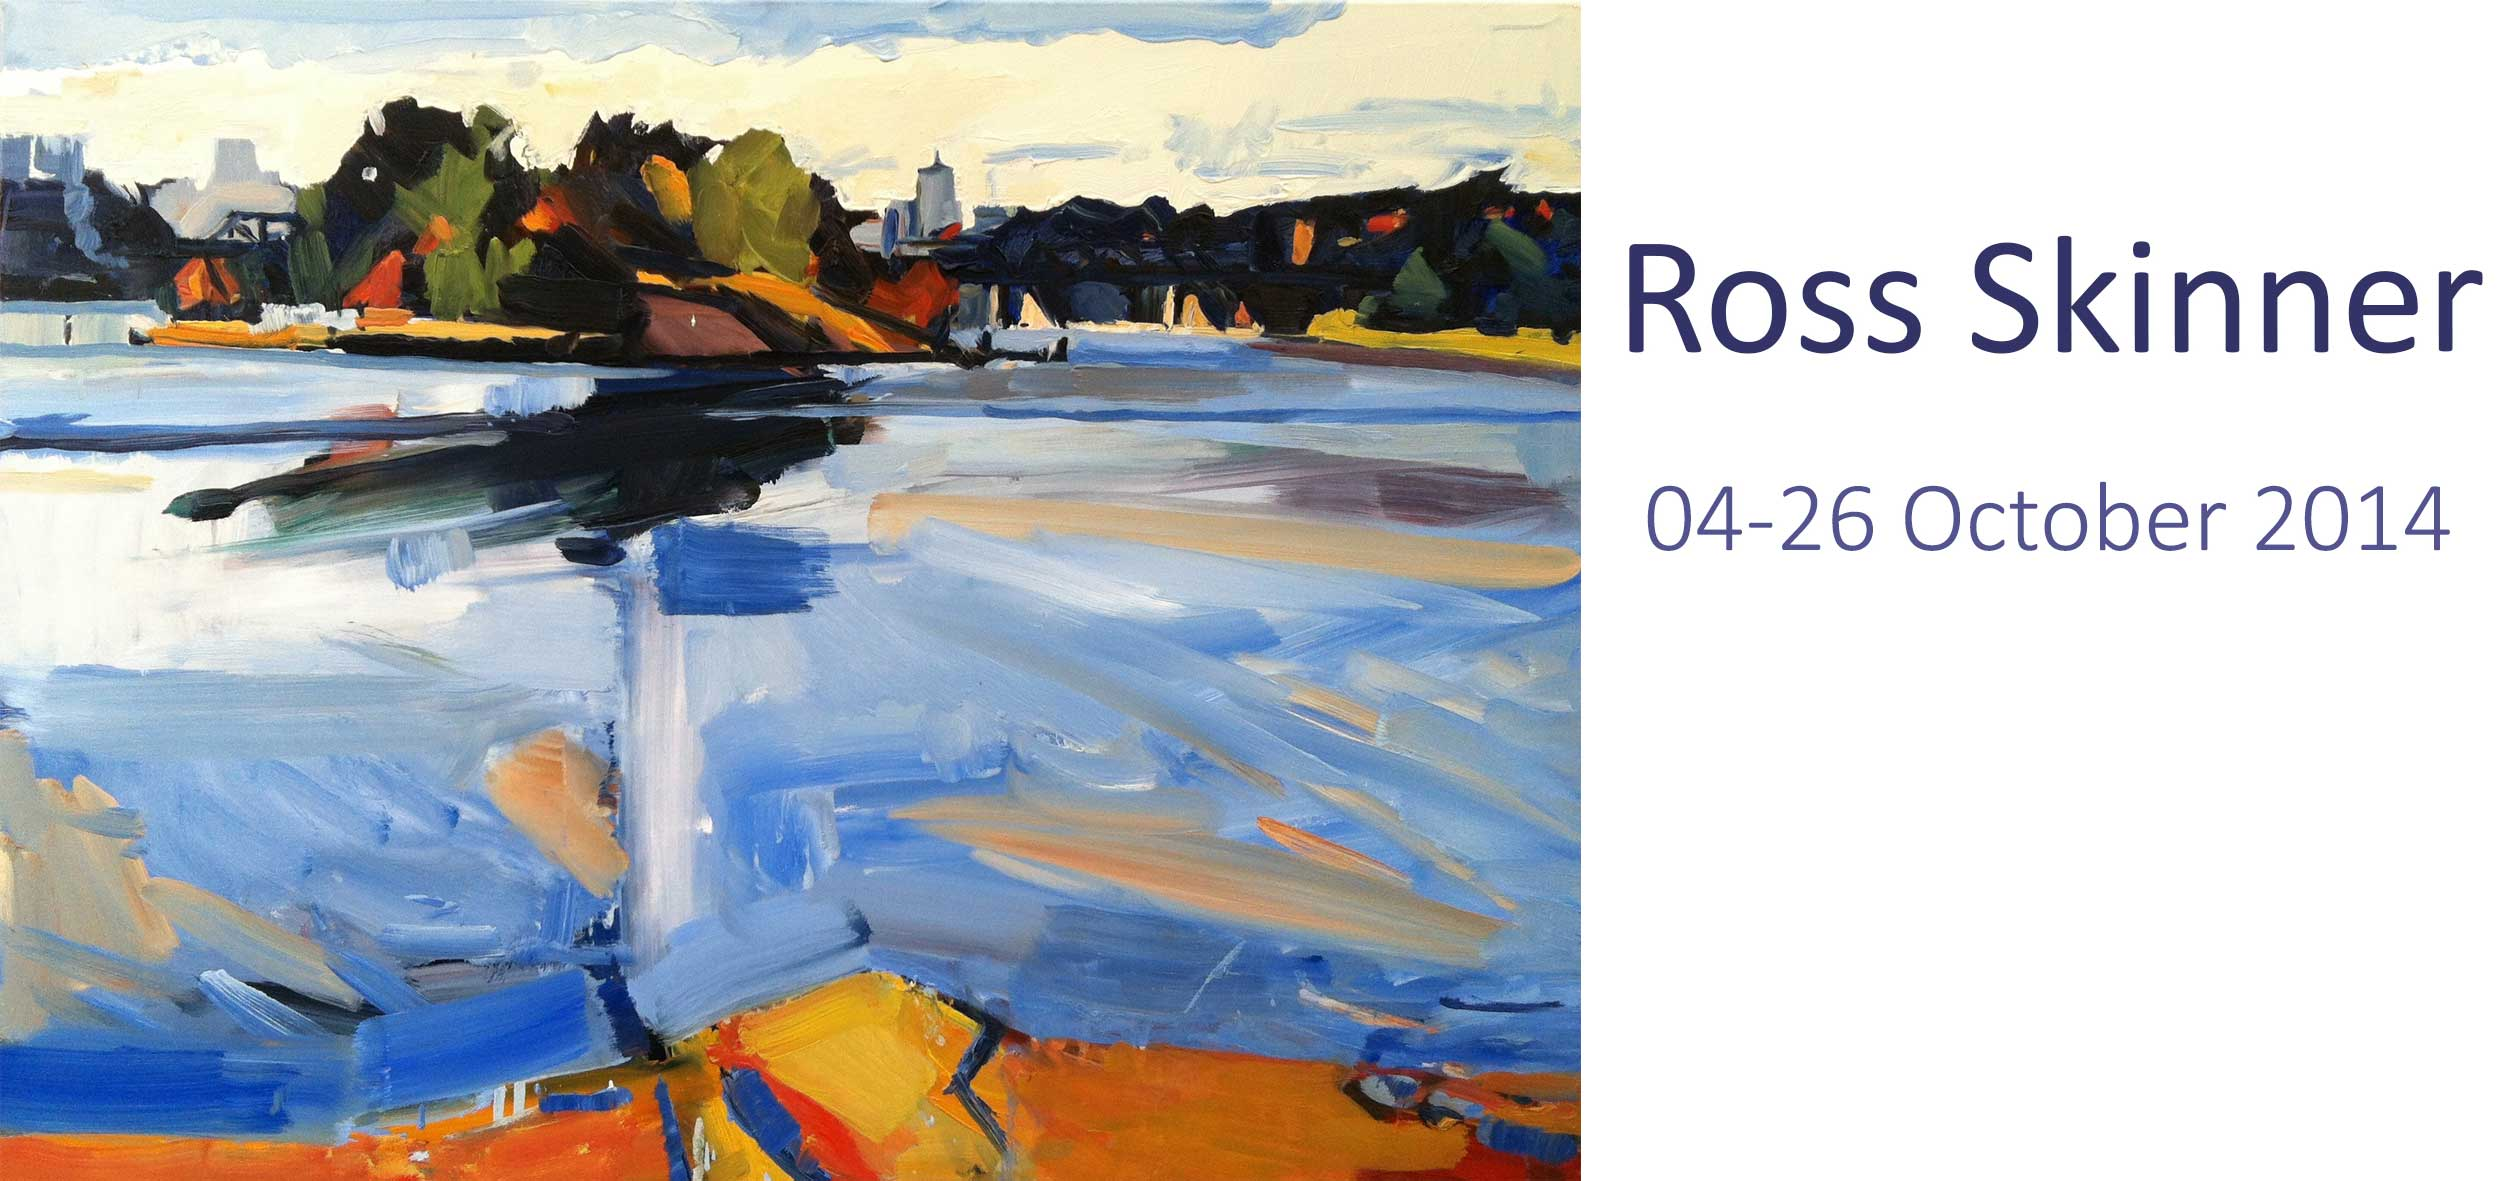 View Exhibition at Artsite Gallery, Sydney: 04 - 26 October 2014 Ross Skinner - New Paintings. Solo Exhibition